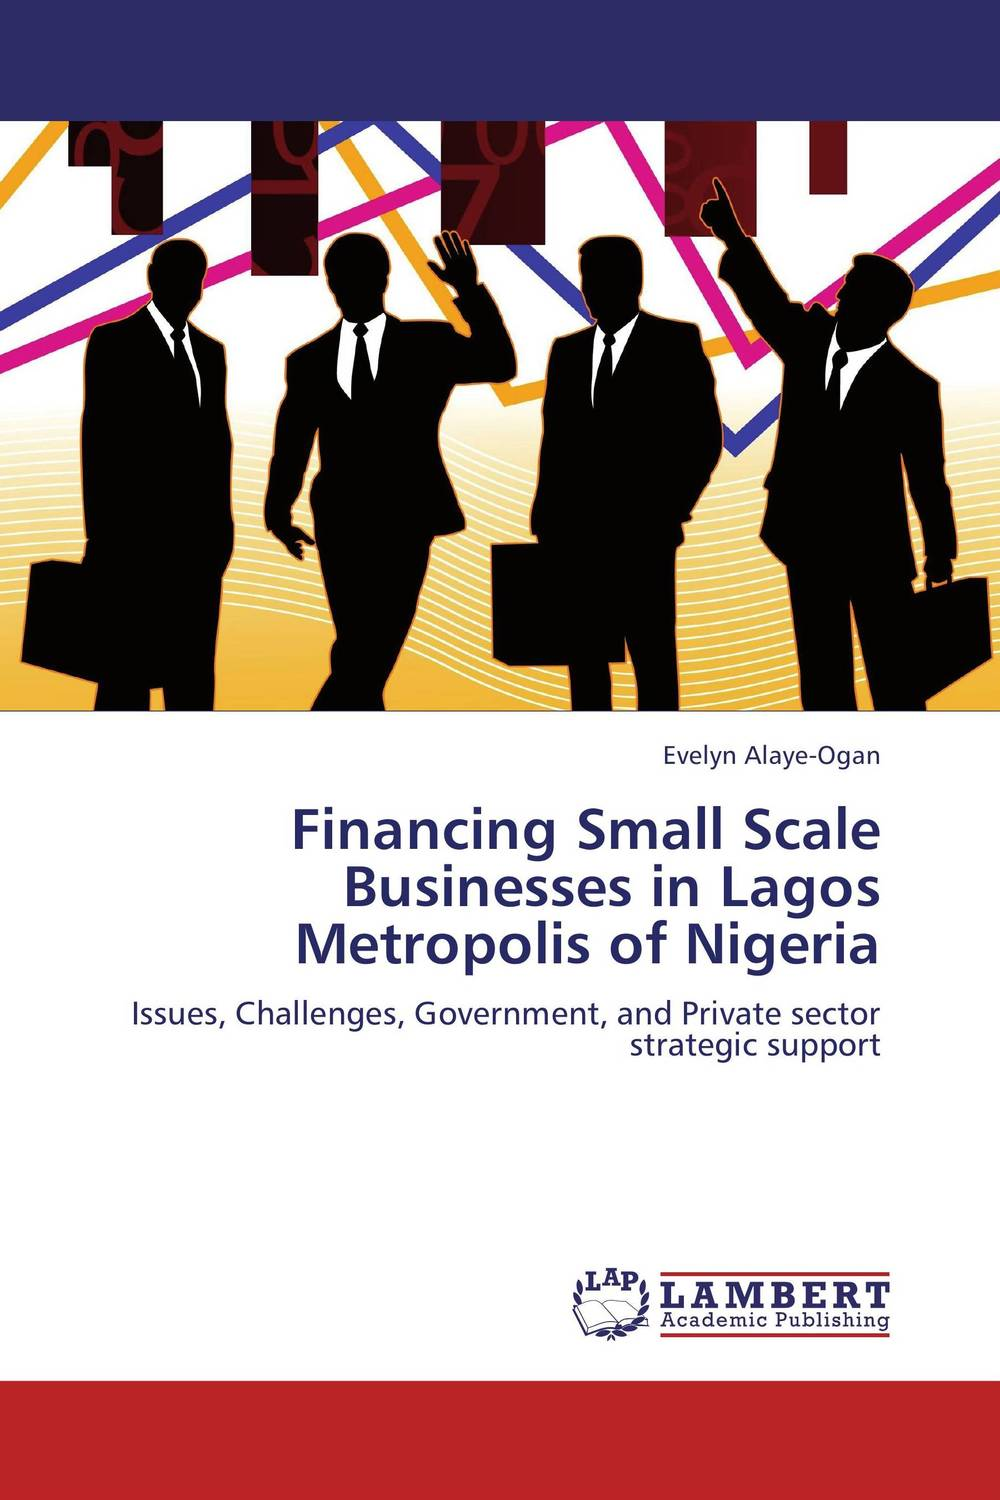 купить Financing Small Scale Businesses in Lagos Metropolis of Nigeria по цене 4468 рублей